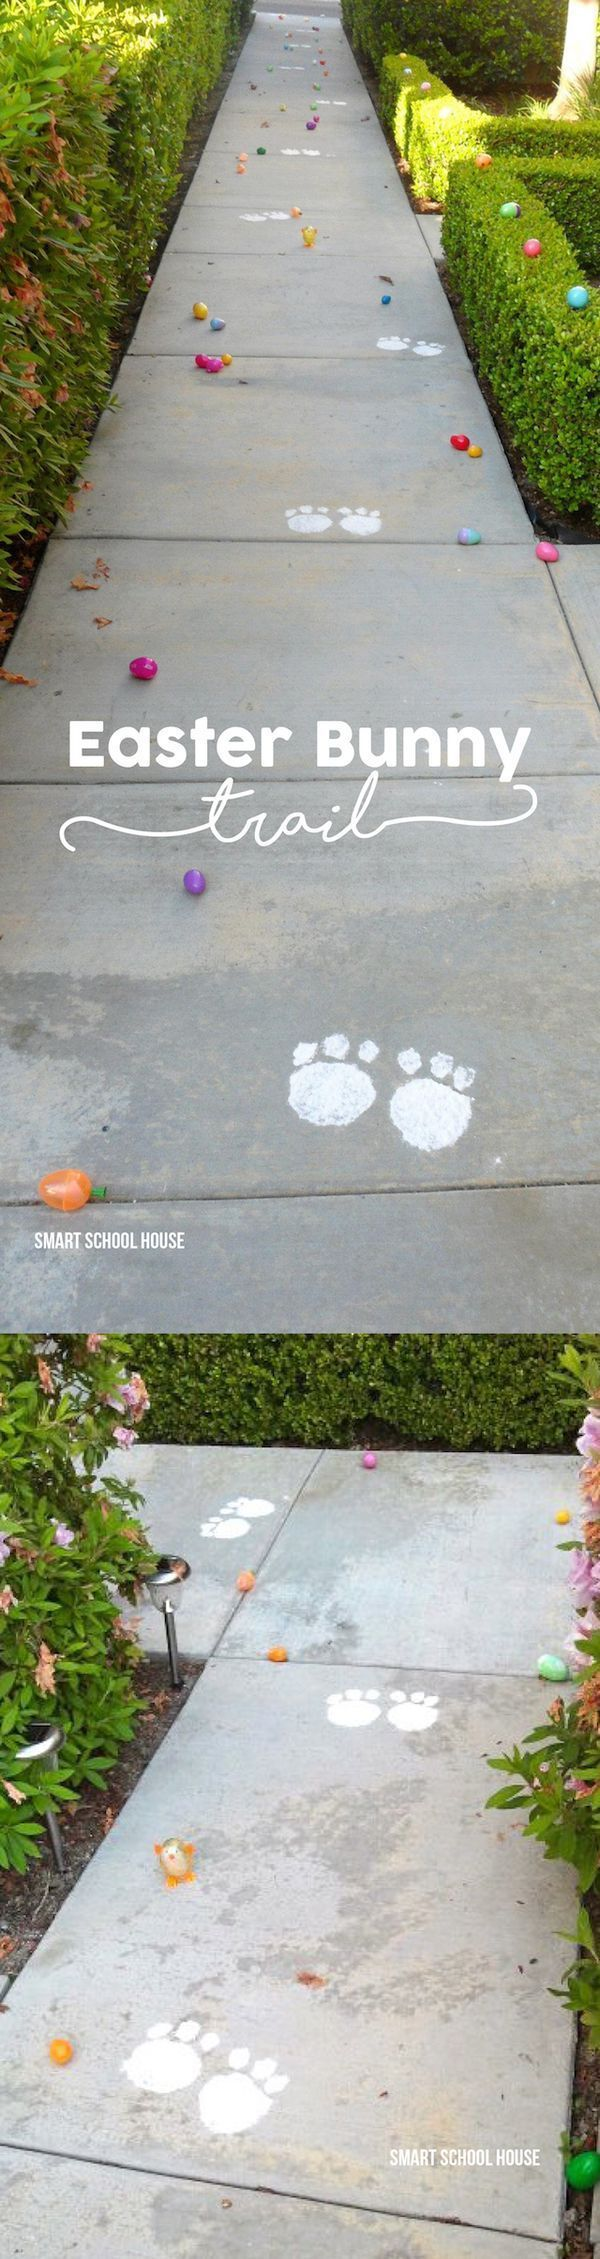 Easter Bunny Footprint Trail - using flour and and an aluminum pan! A fun idea for your egg hunt this spring.: